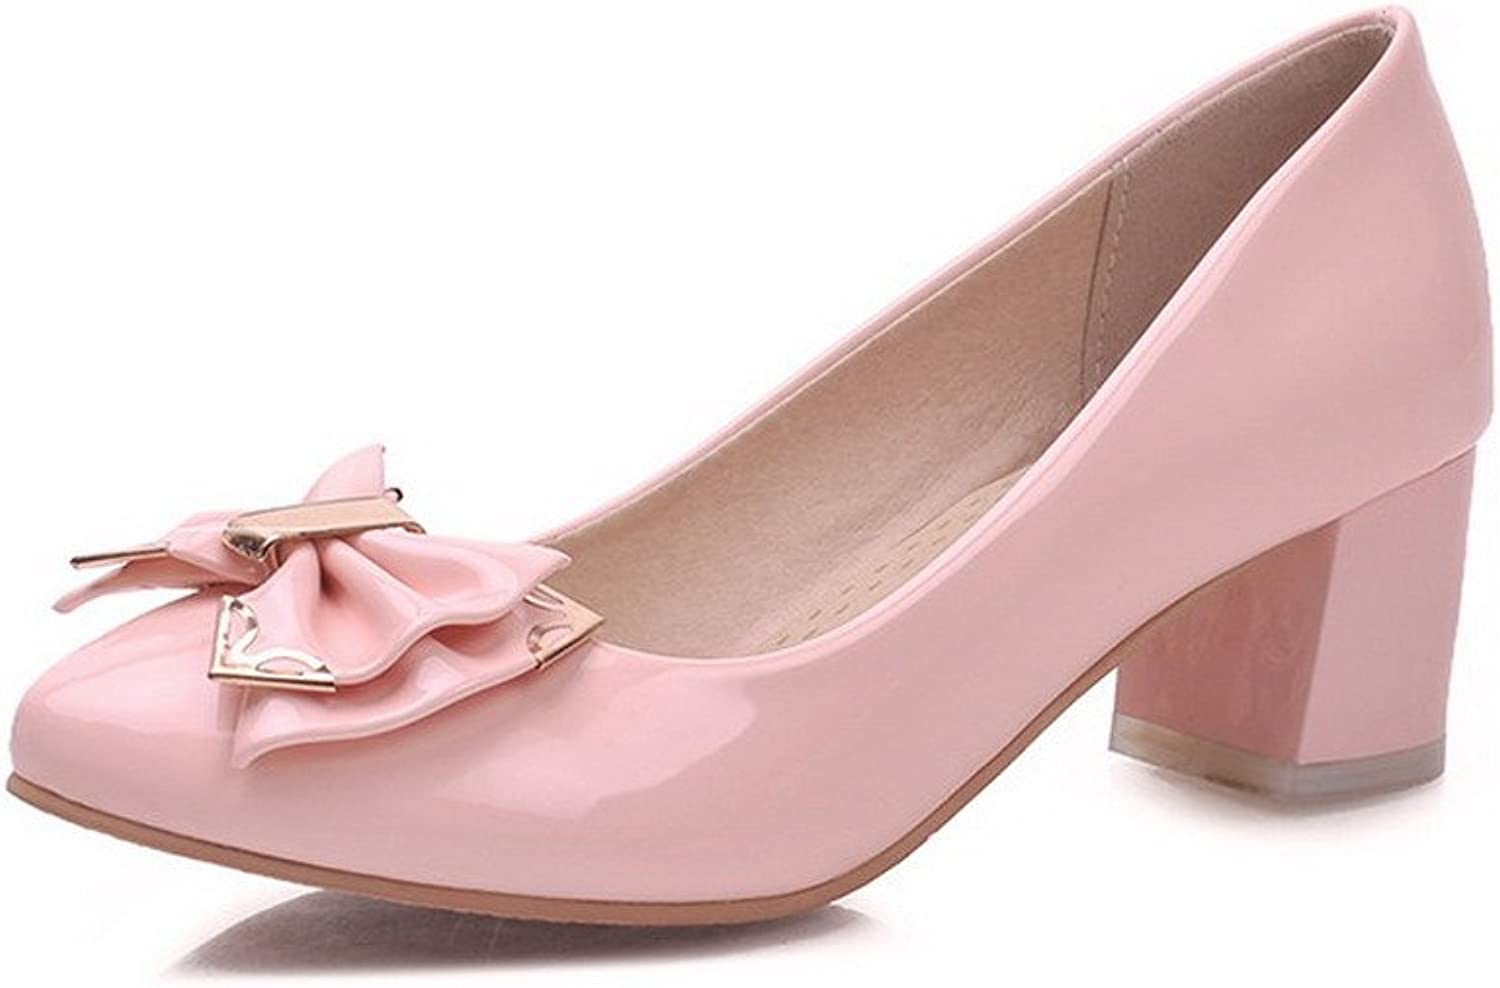 WeenFashion Women's Pull On Pointed Closed Toe Kitten Heels Patent Leather Solid Pumps-shoes